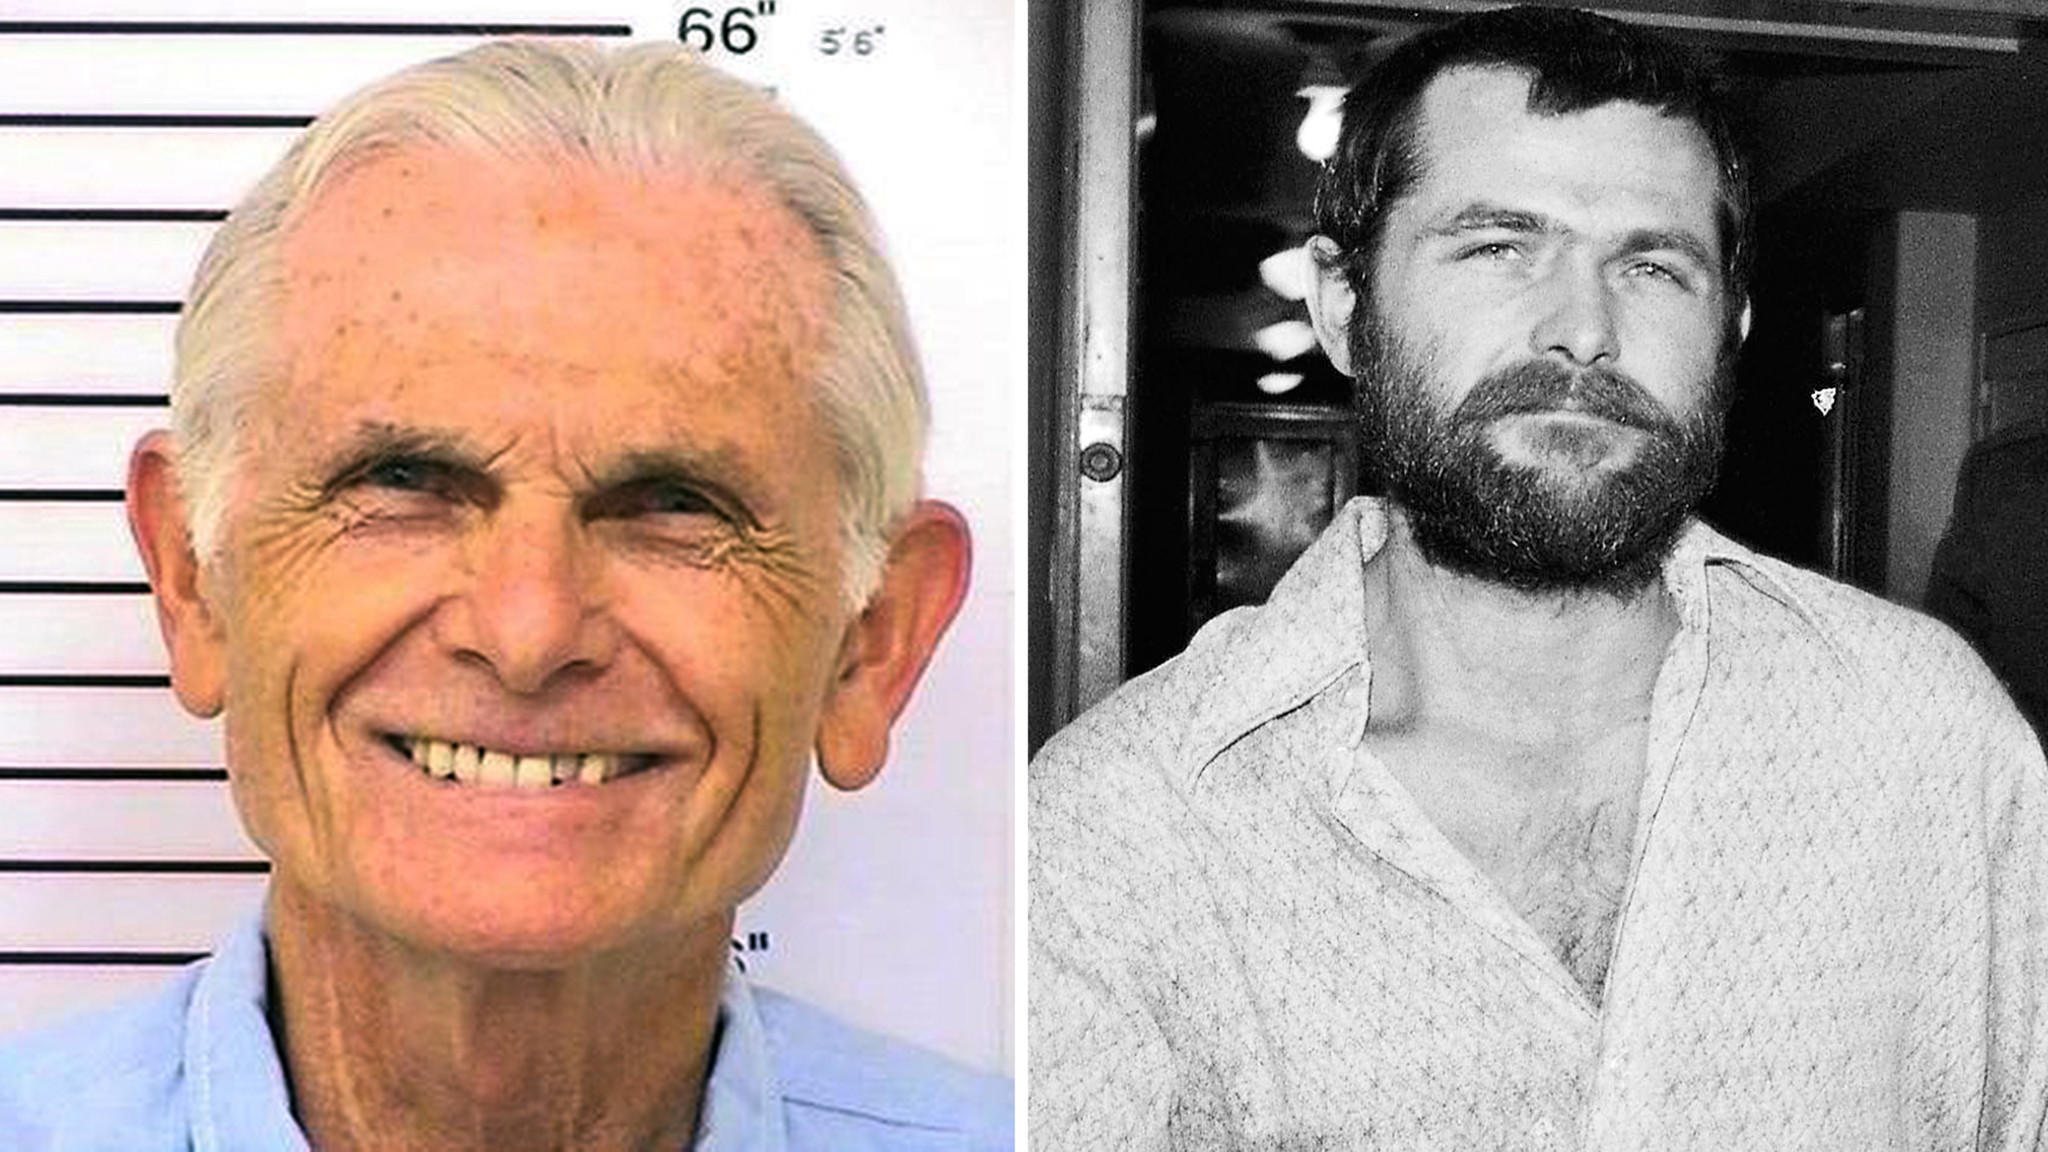 At left, Bruce Davis in 2014 in a California Department of Corrections image, and in 1970 in a photo made by Harold Filan.